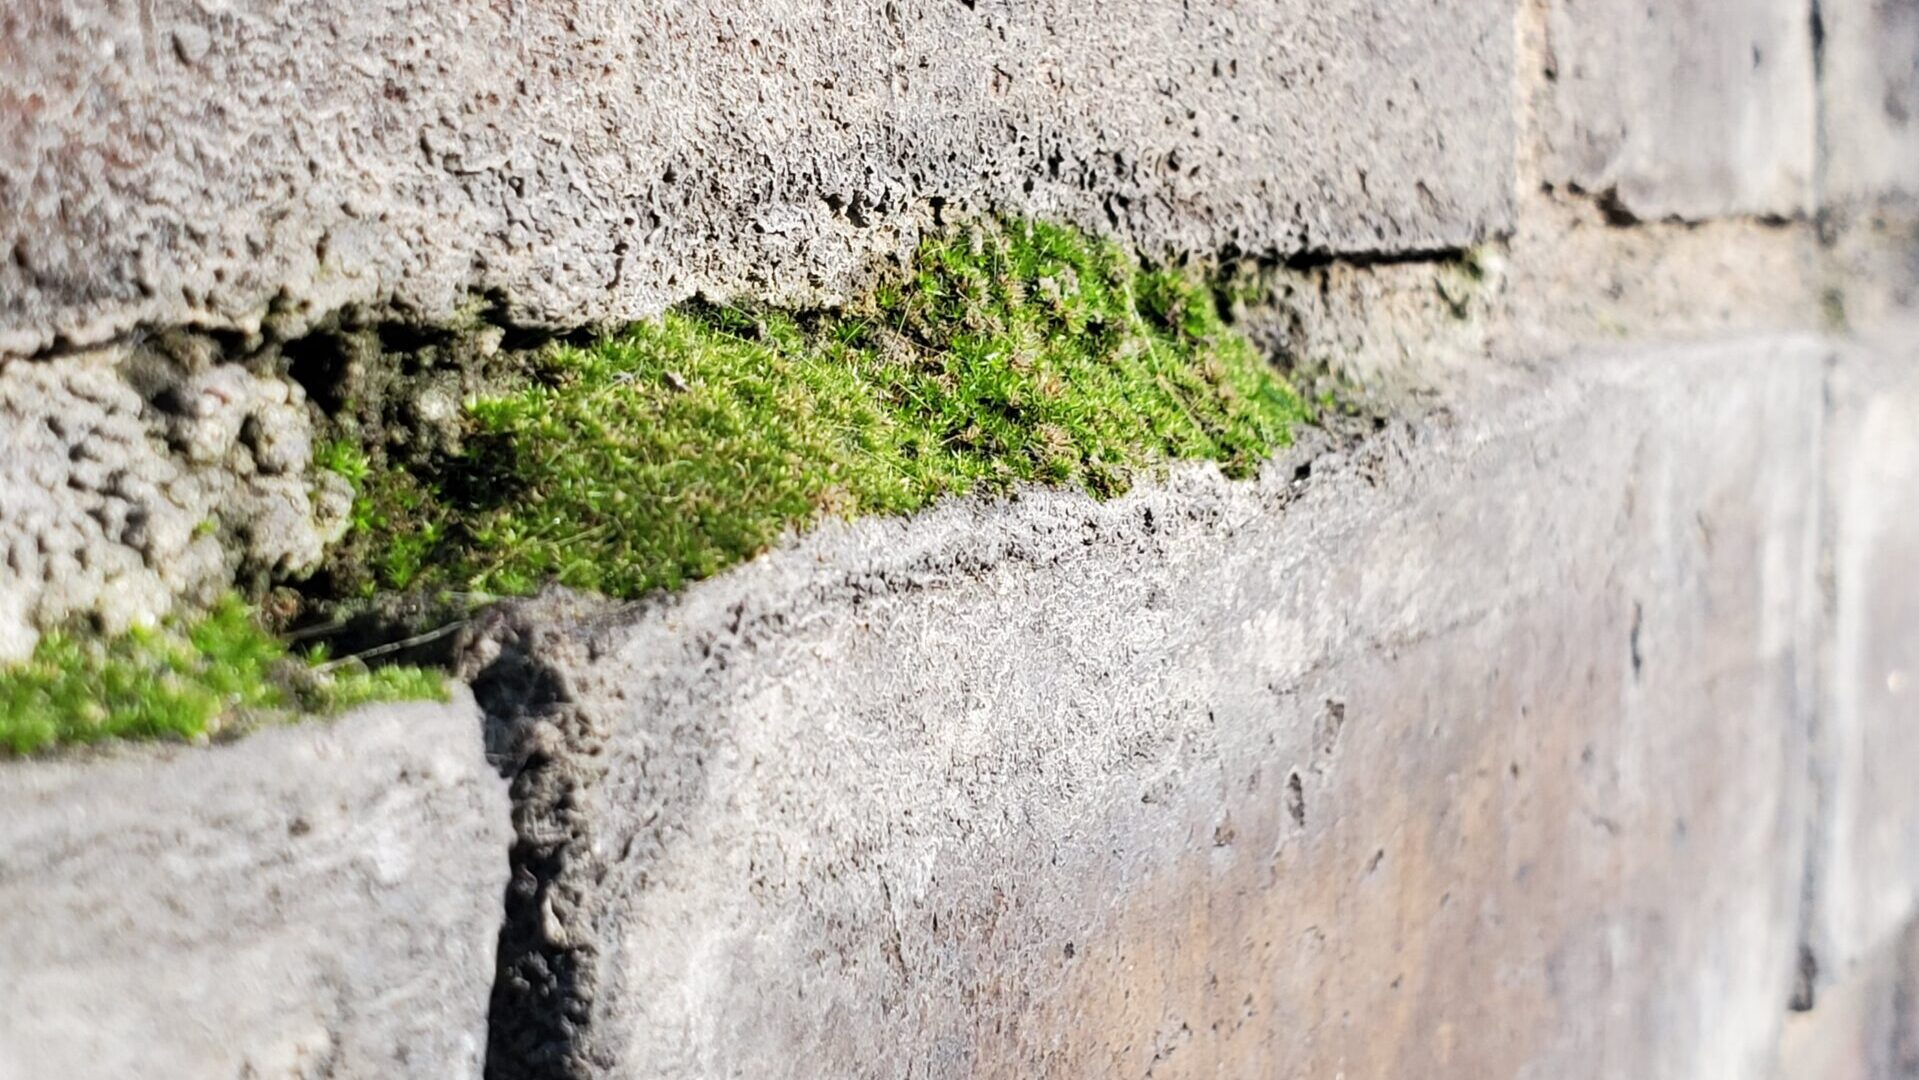 Stage 2 - Cyanobacteria, fungi, and then mosses grow on top of mortar joints.   In this picture you can see a thin layer of moss has started to grow on top of the exposed mortar joint. This only happens once the mortar joint has deteriorated significantly to the point that there is an inordinately higher ratio of residual sand than lime mortar binder.